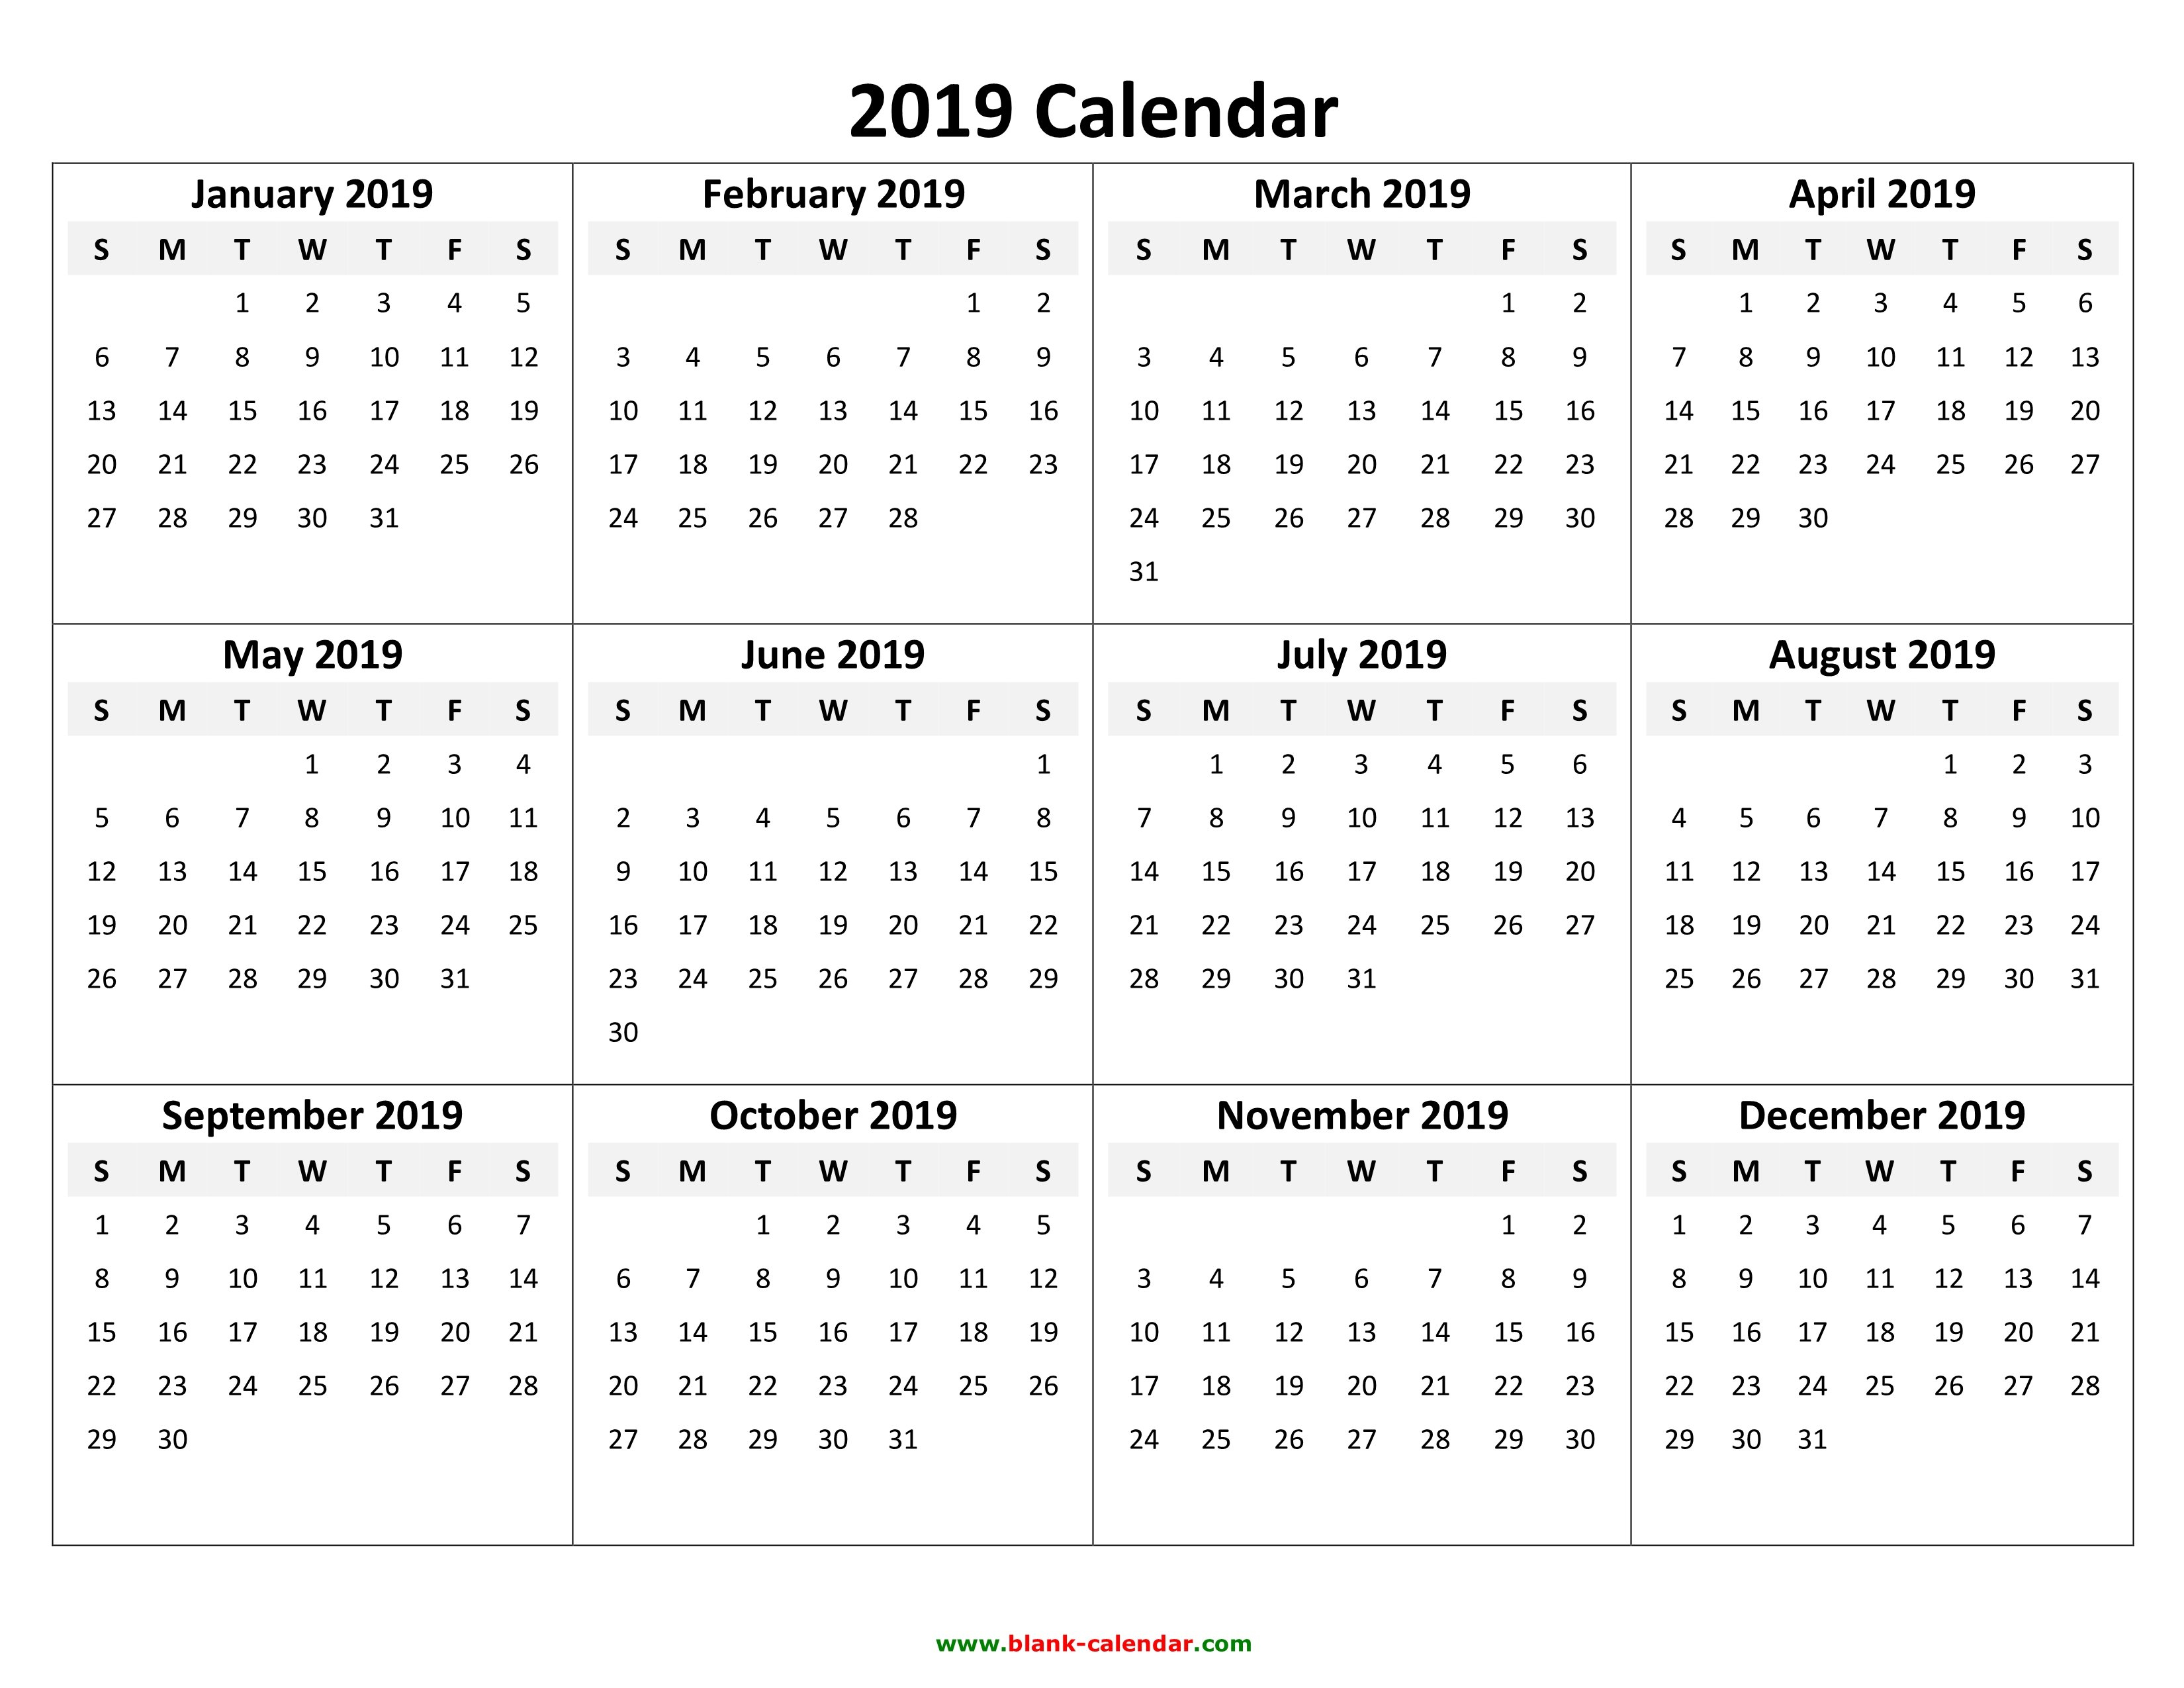 Yearly Calendar 2019 | Free Download And Print Calendar Of 2019 Pdf